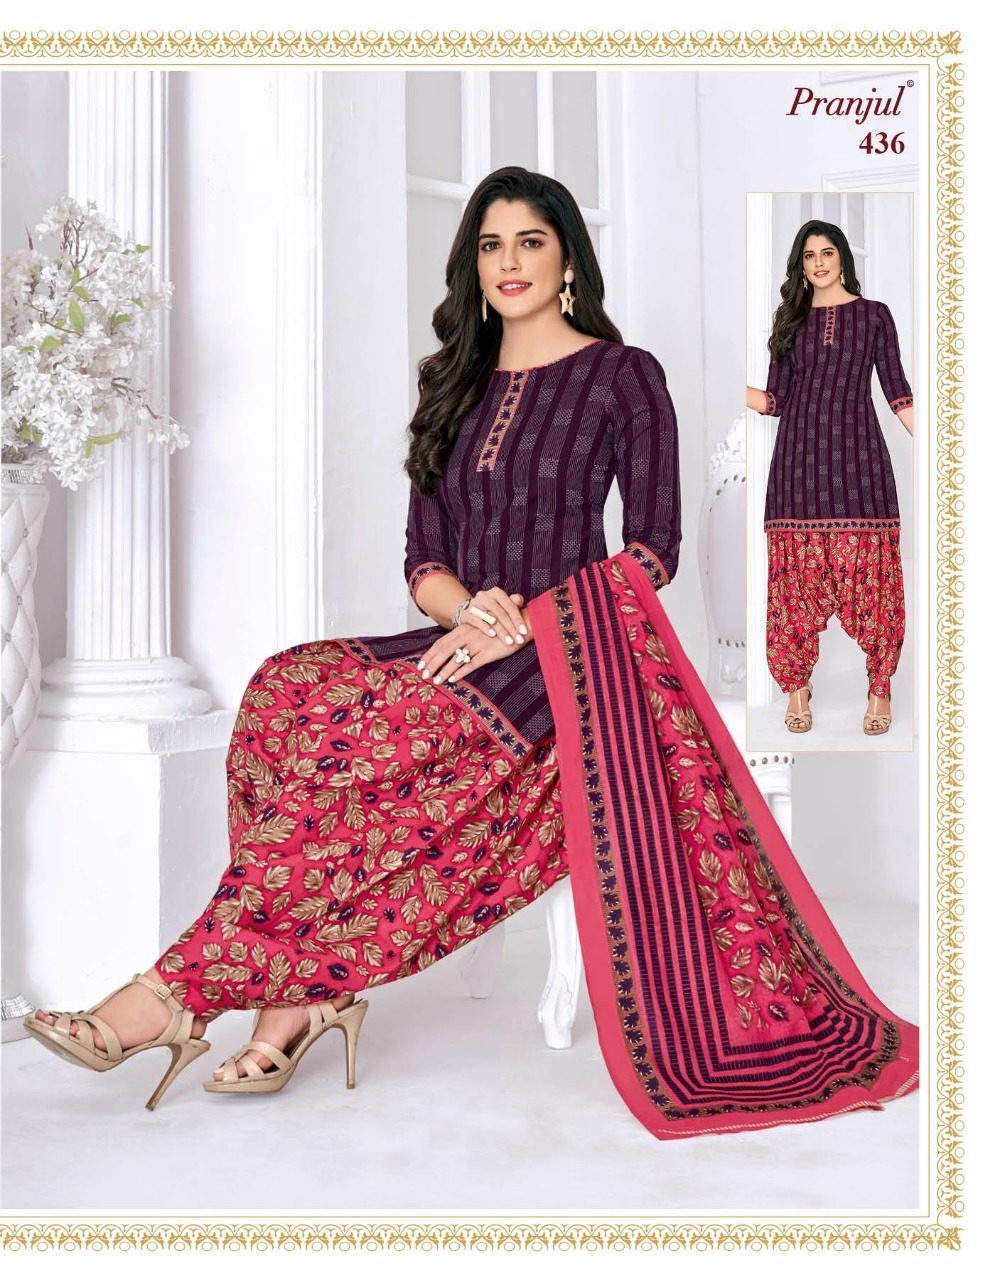 Pranjul Priyanka Vol 4 B Readymade Suit Wholesale Catalog 15 Pcs 2 - Pranjul Priyanka Vol 4 B Readymade Suit Wholesale Catalog 15 Pcs